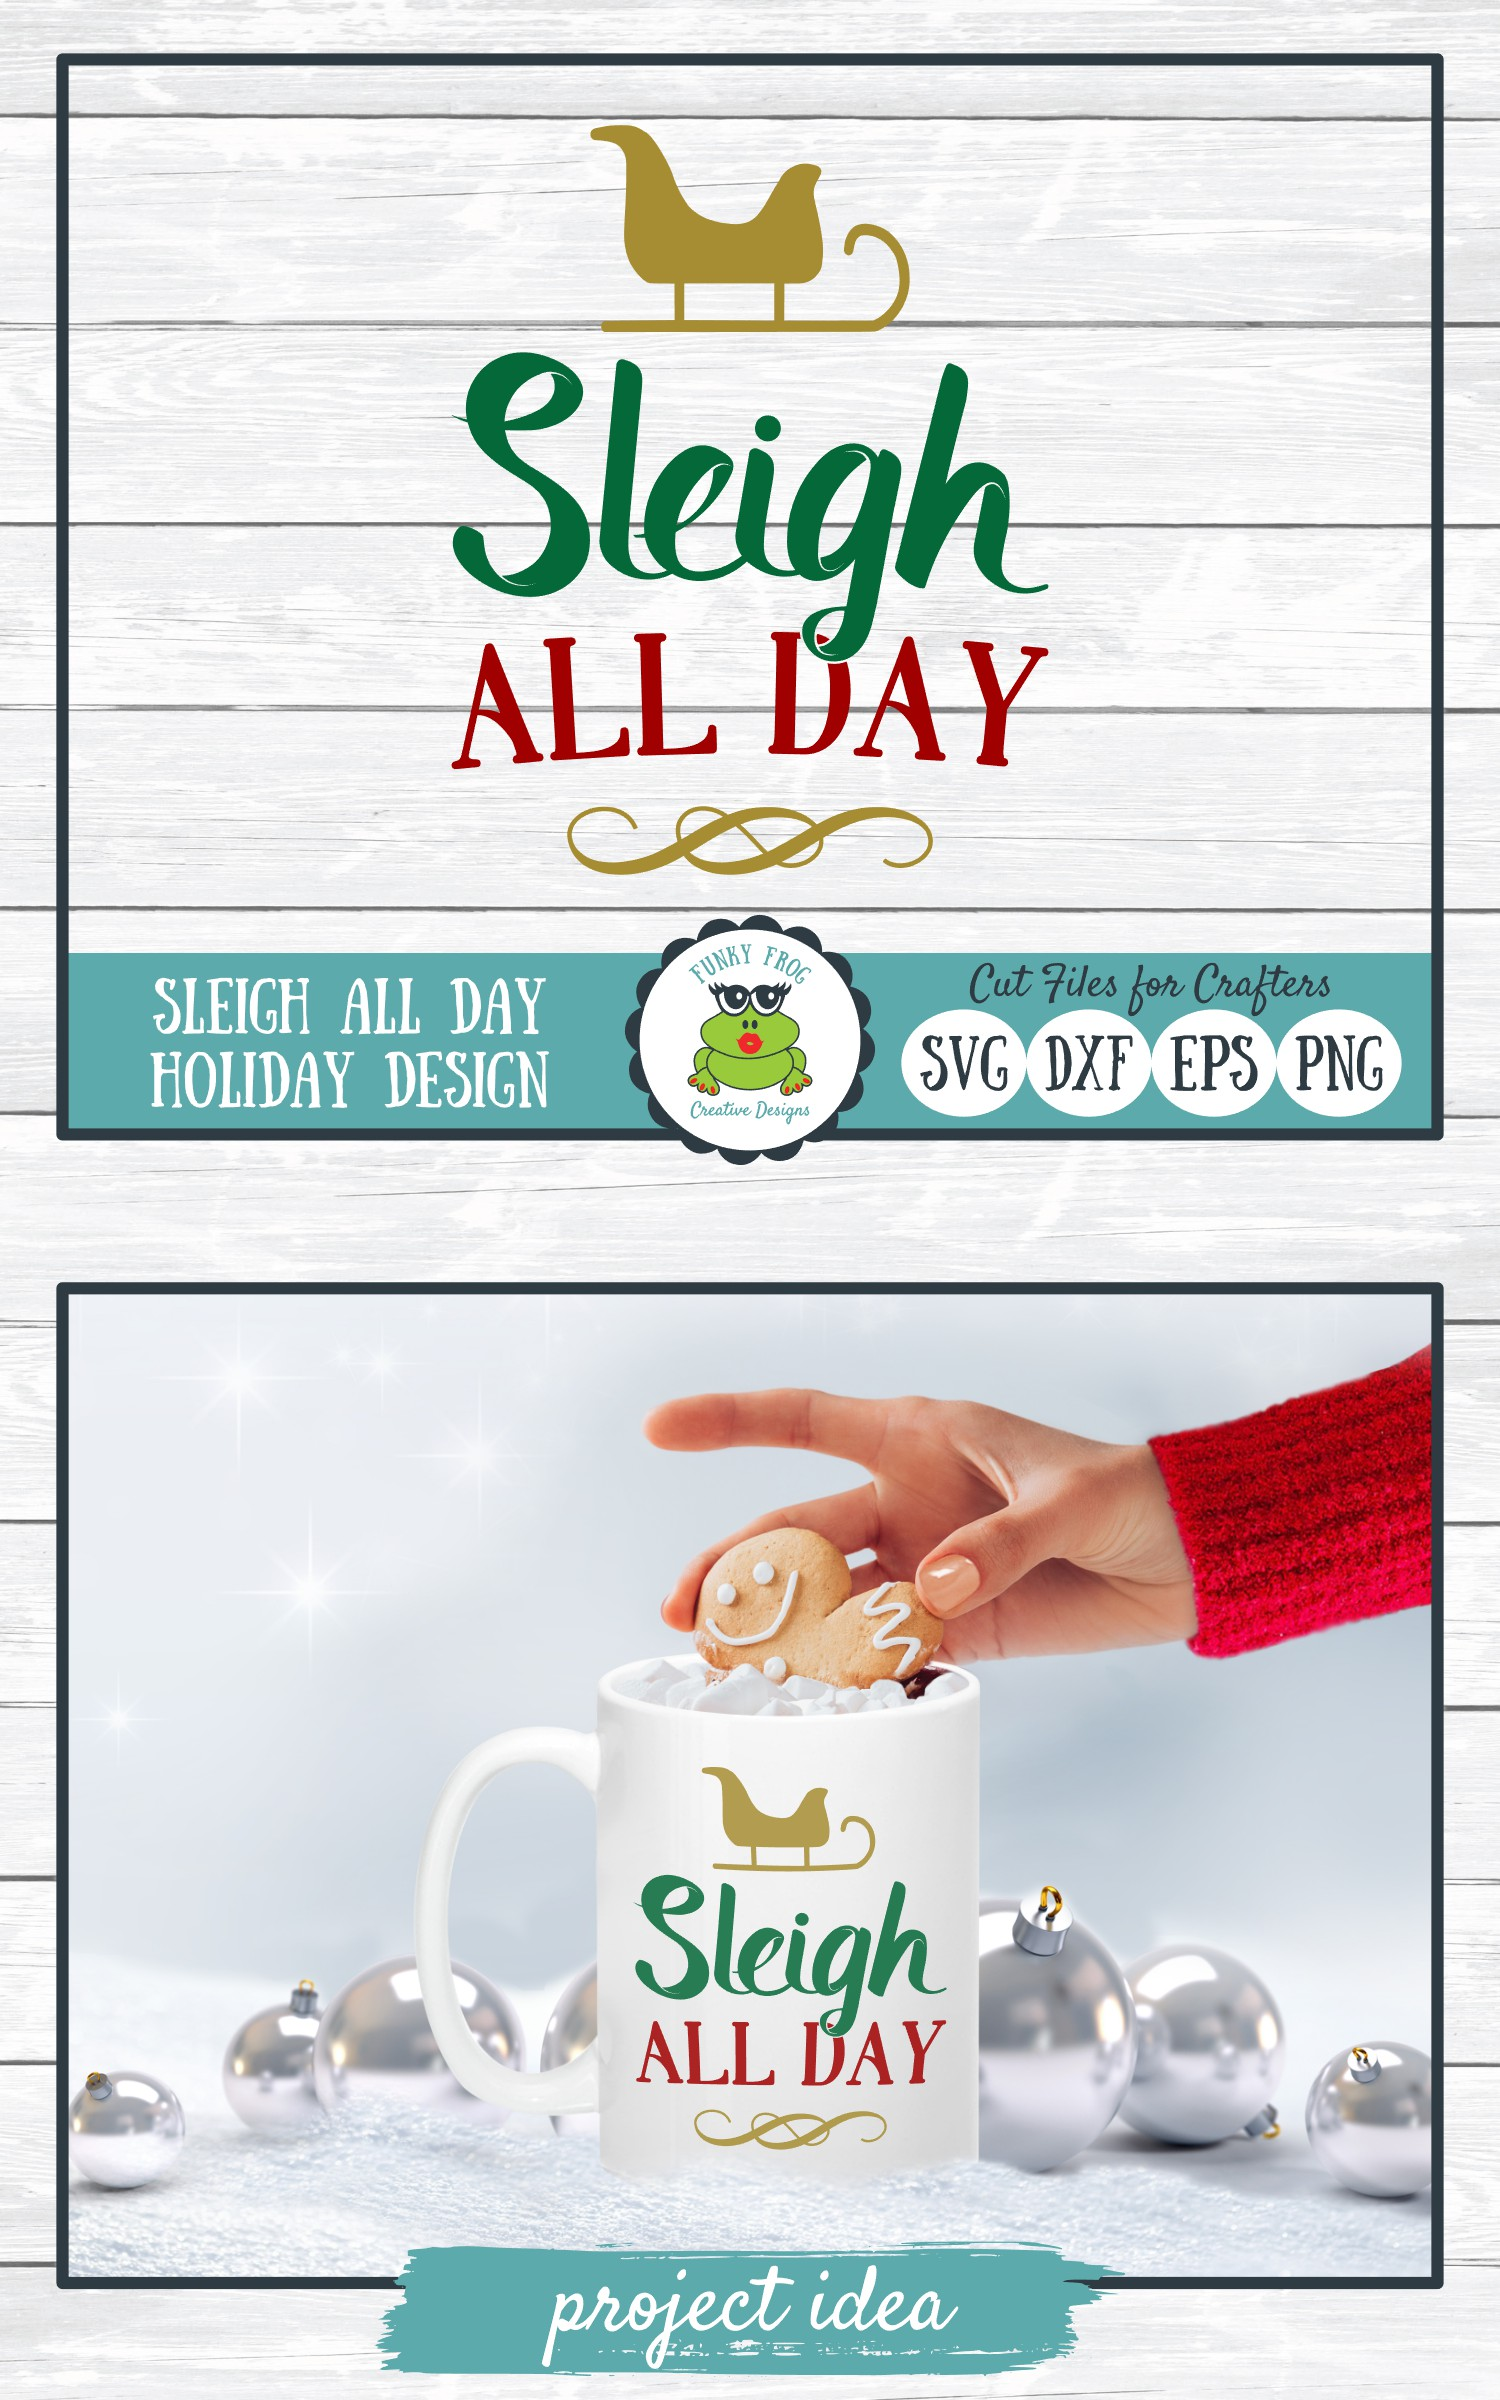 Sleigh All Day, Christmas Holiday SVG Cut File for Crafters example image 4